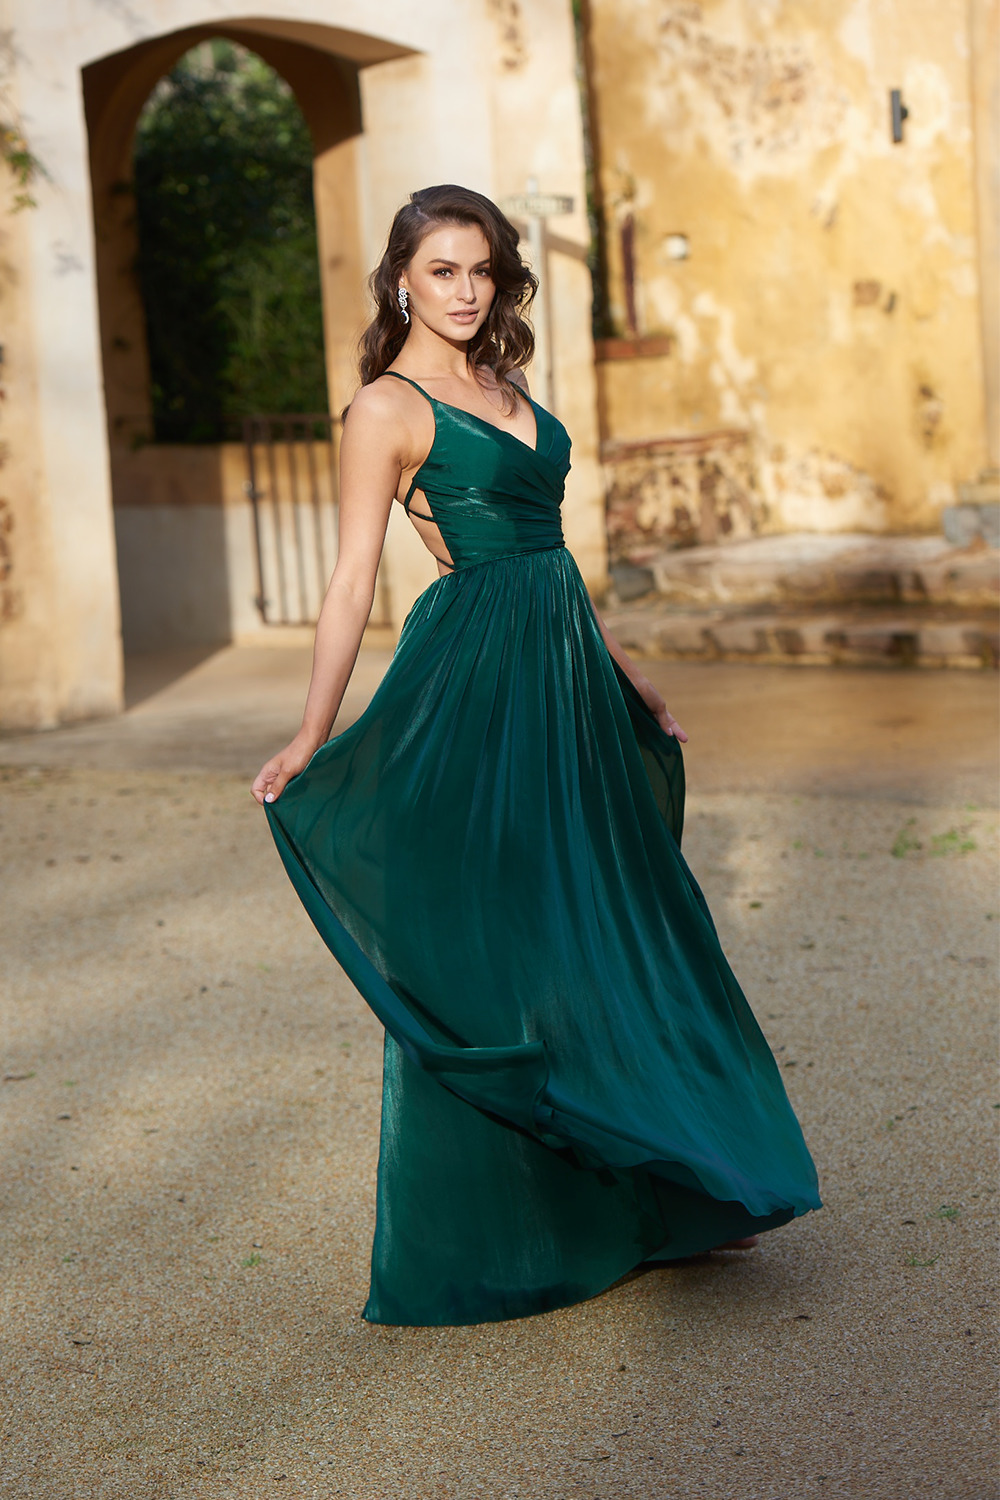 Lee Satin Lace-Up Formal Dress PO871